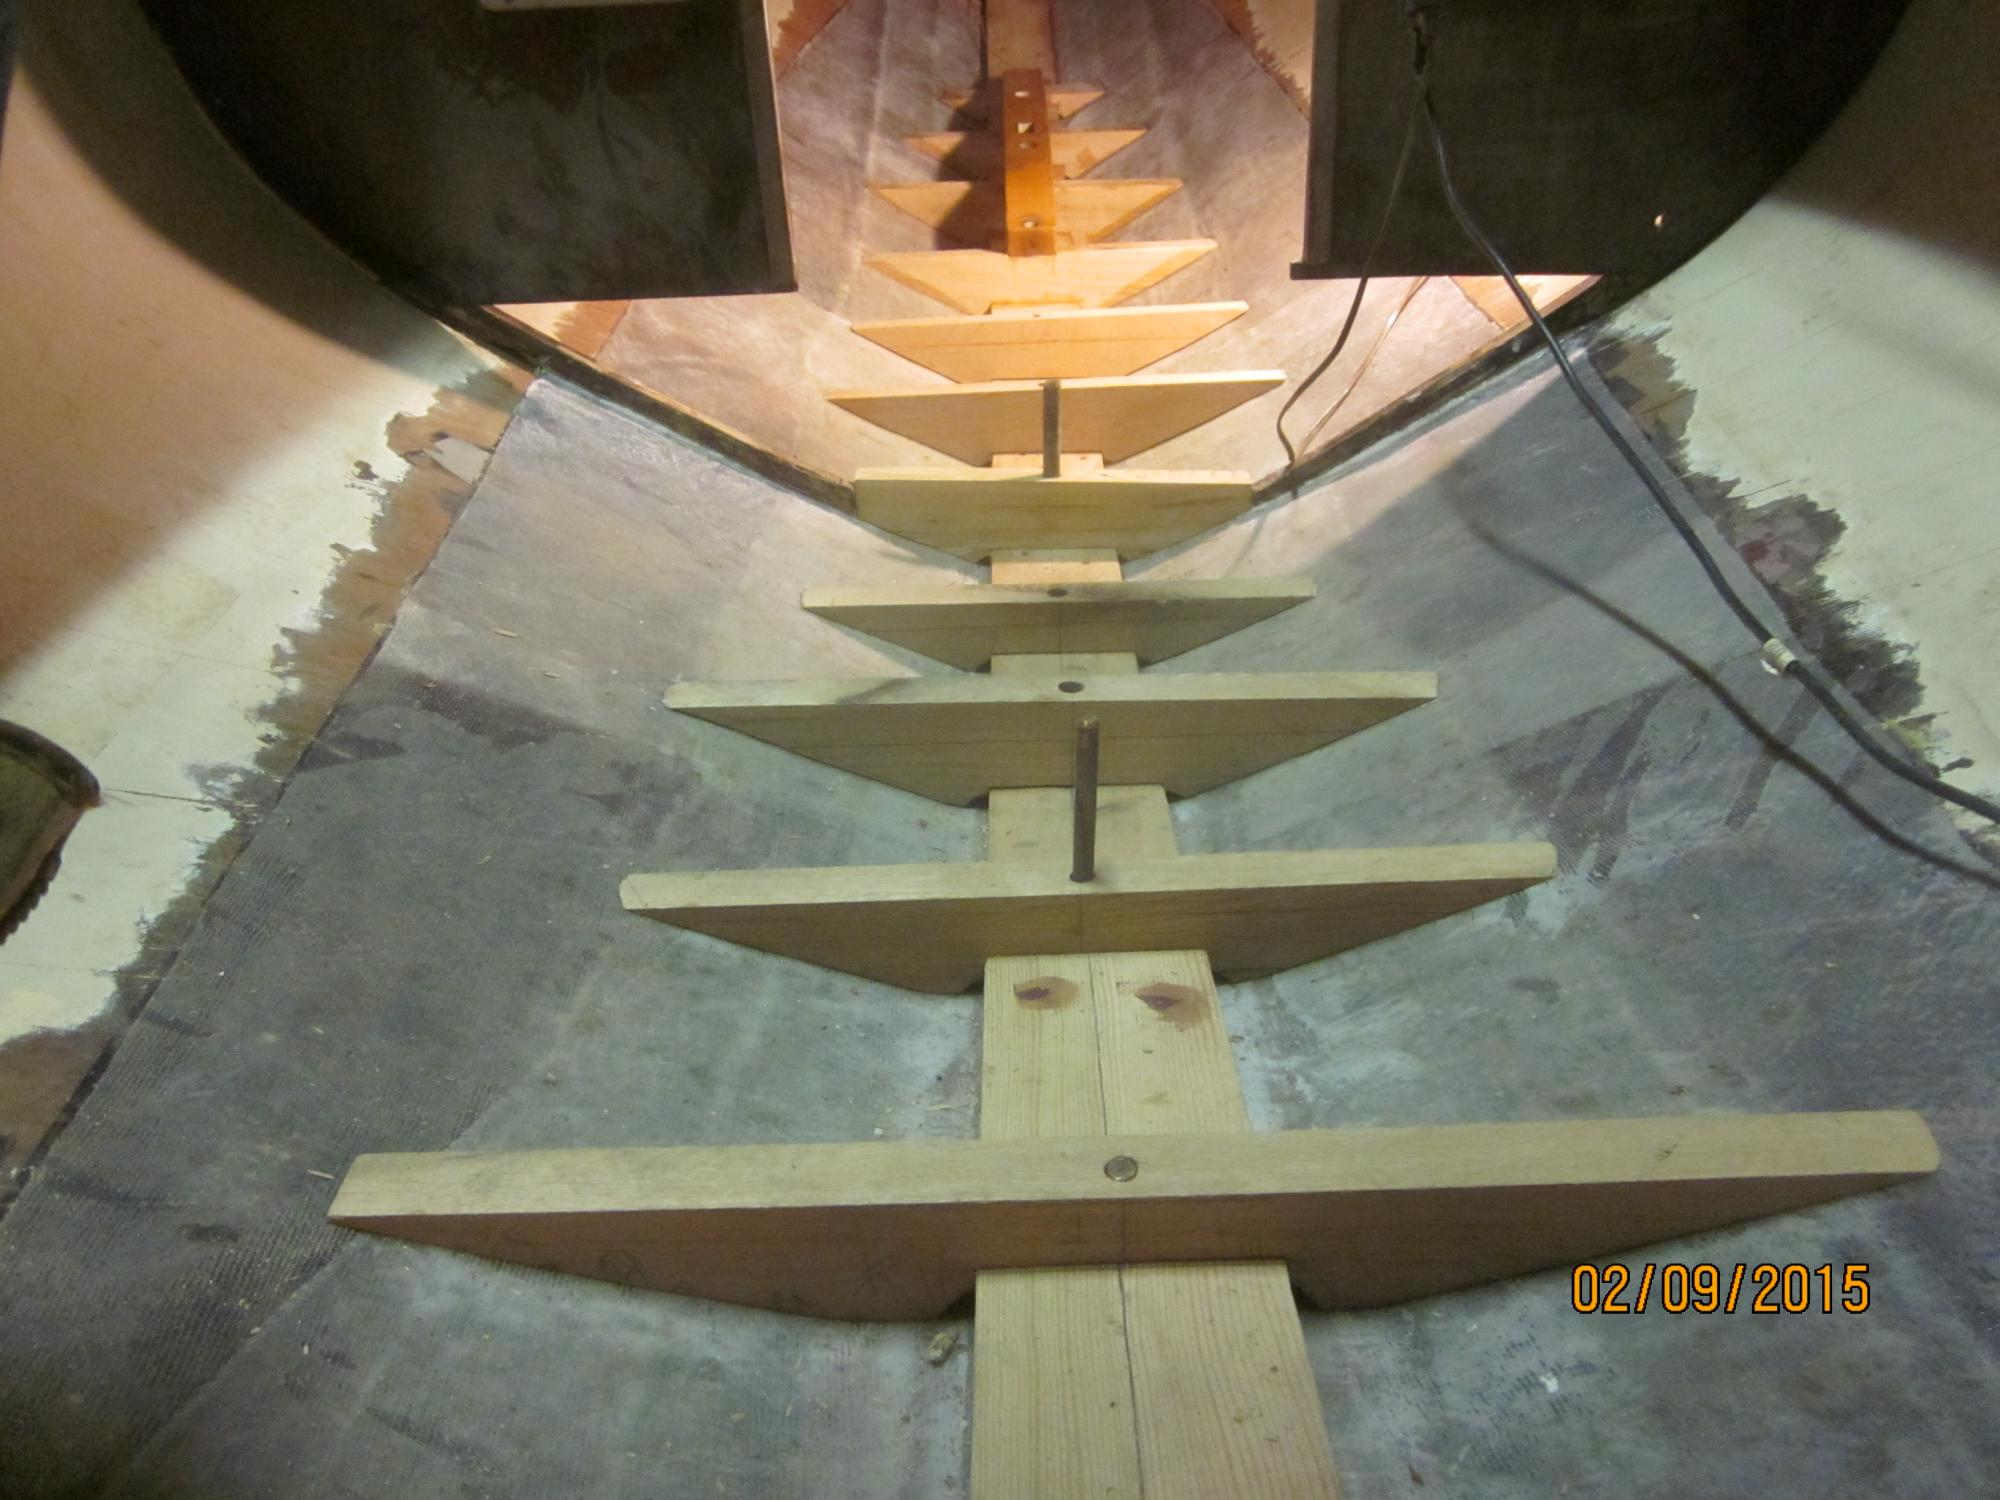 Floor timbers fit but not leveled